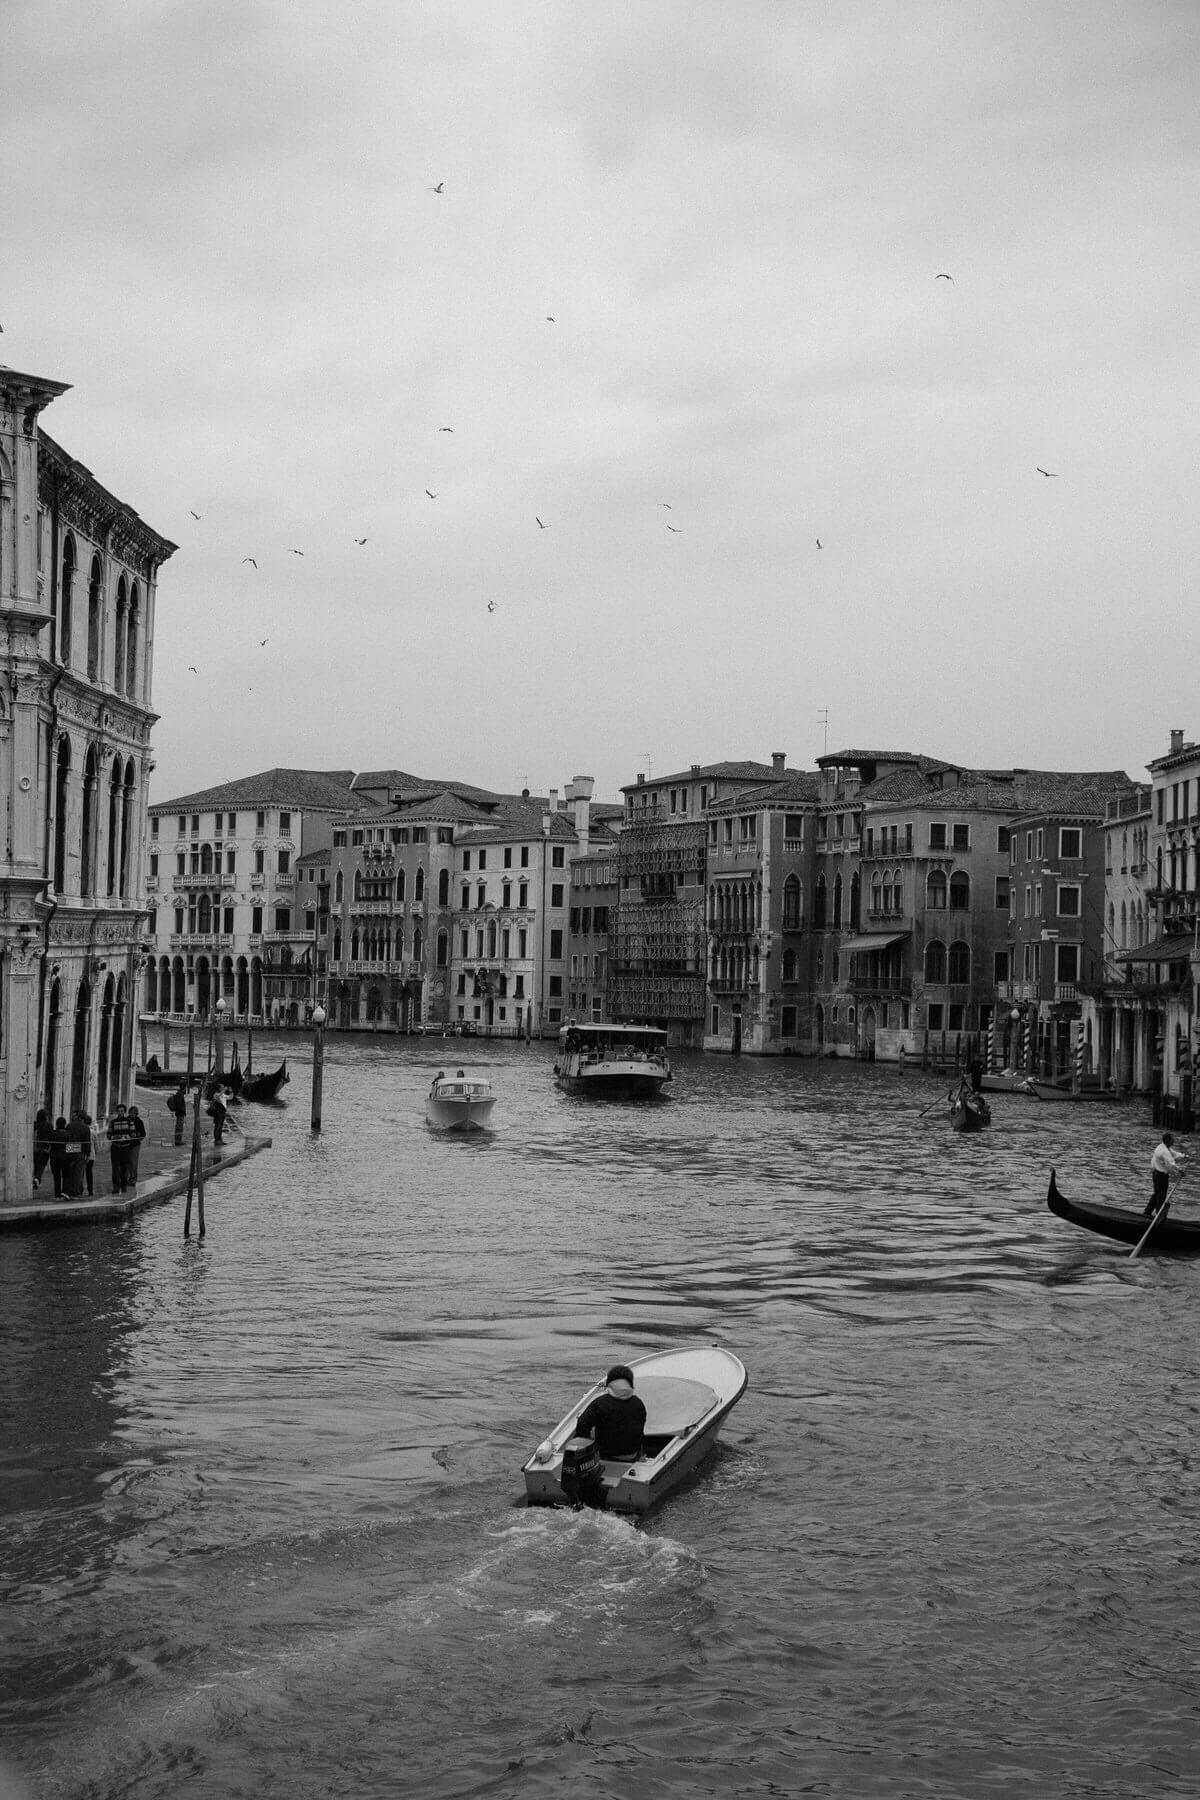 Venice-Italy-black-and-white-fine-art-photography-by-Studio-L-photographer-Laura-Schneider-_4020